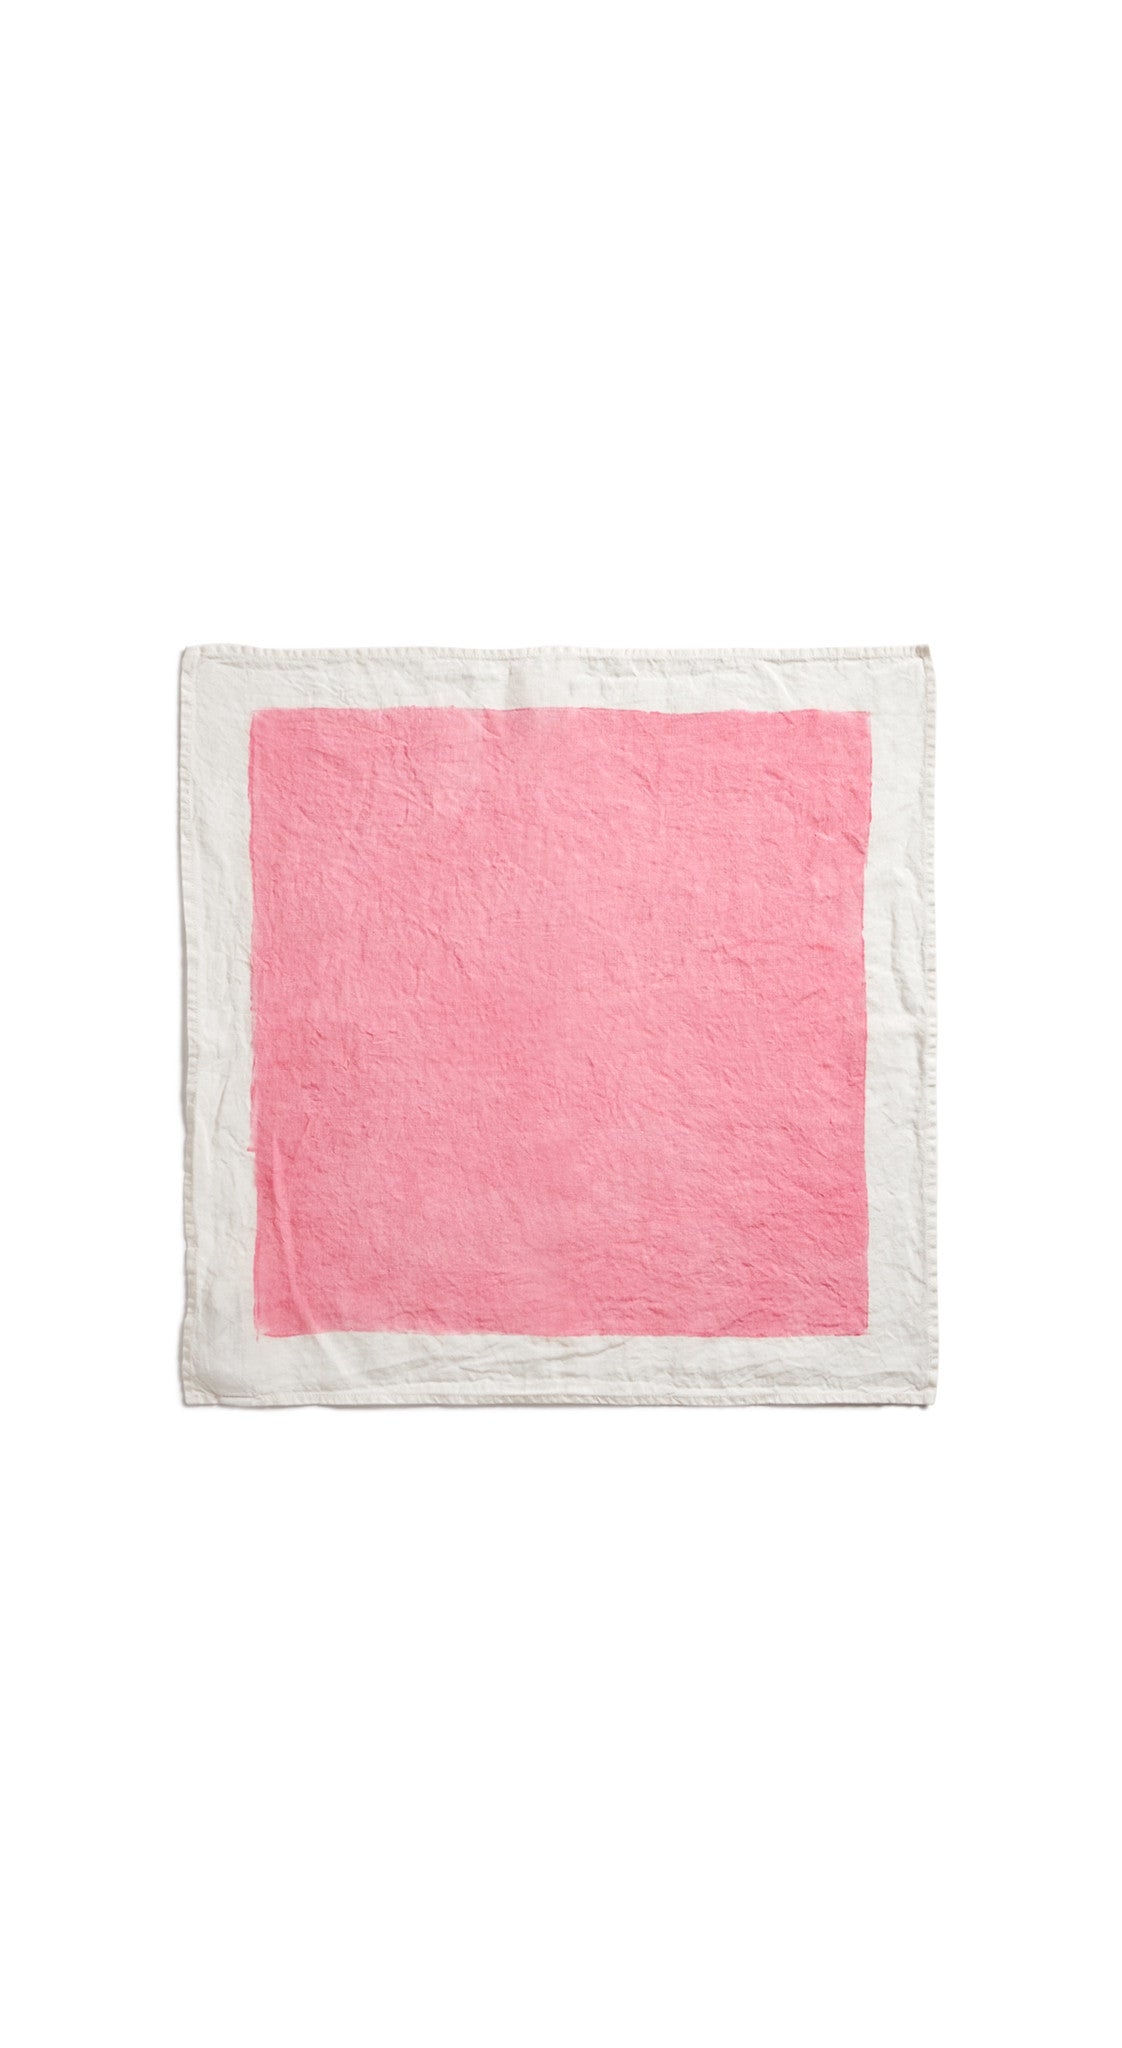 Full Field Linen Napkin in Rose Pink